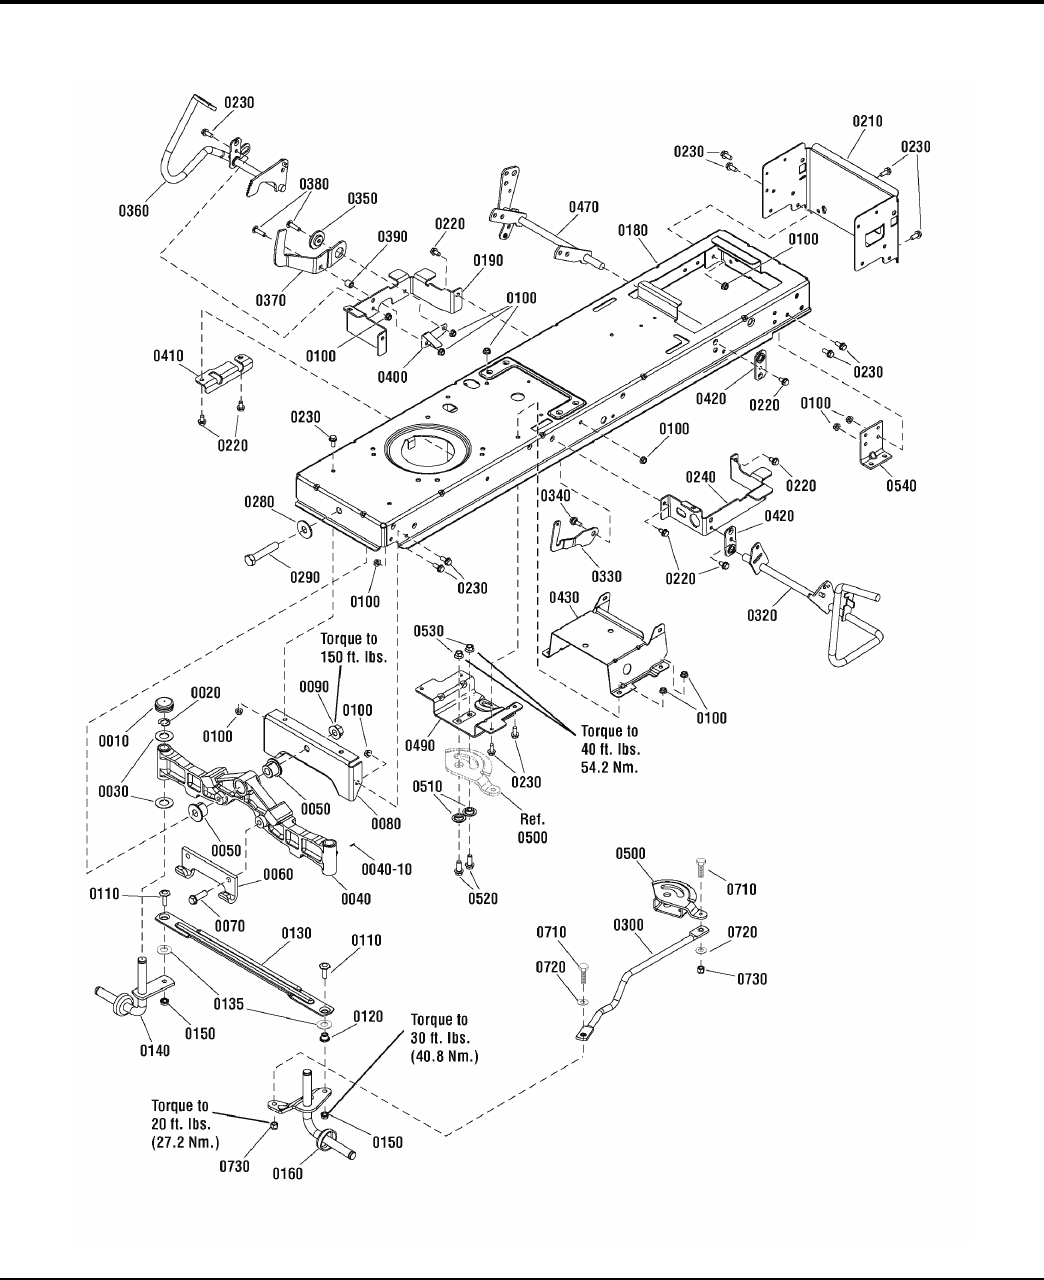 Page 8 of Briggs & Stratton Lawn Mower 500 User Guide